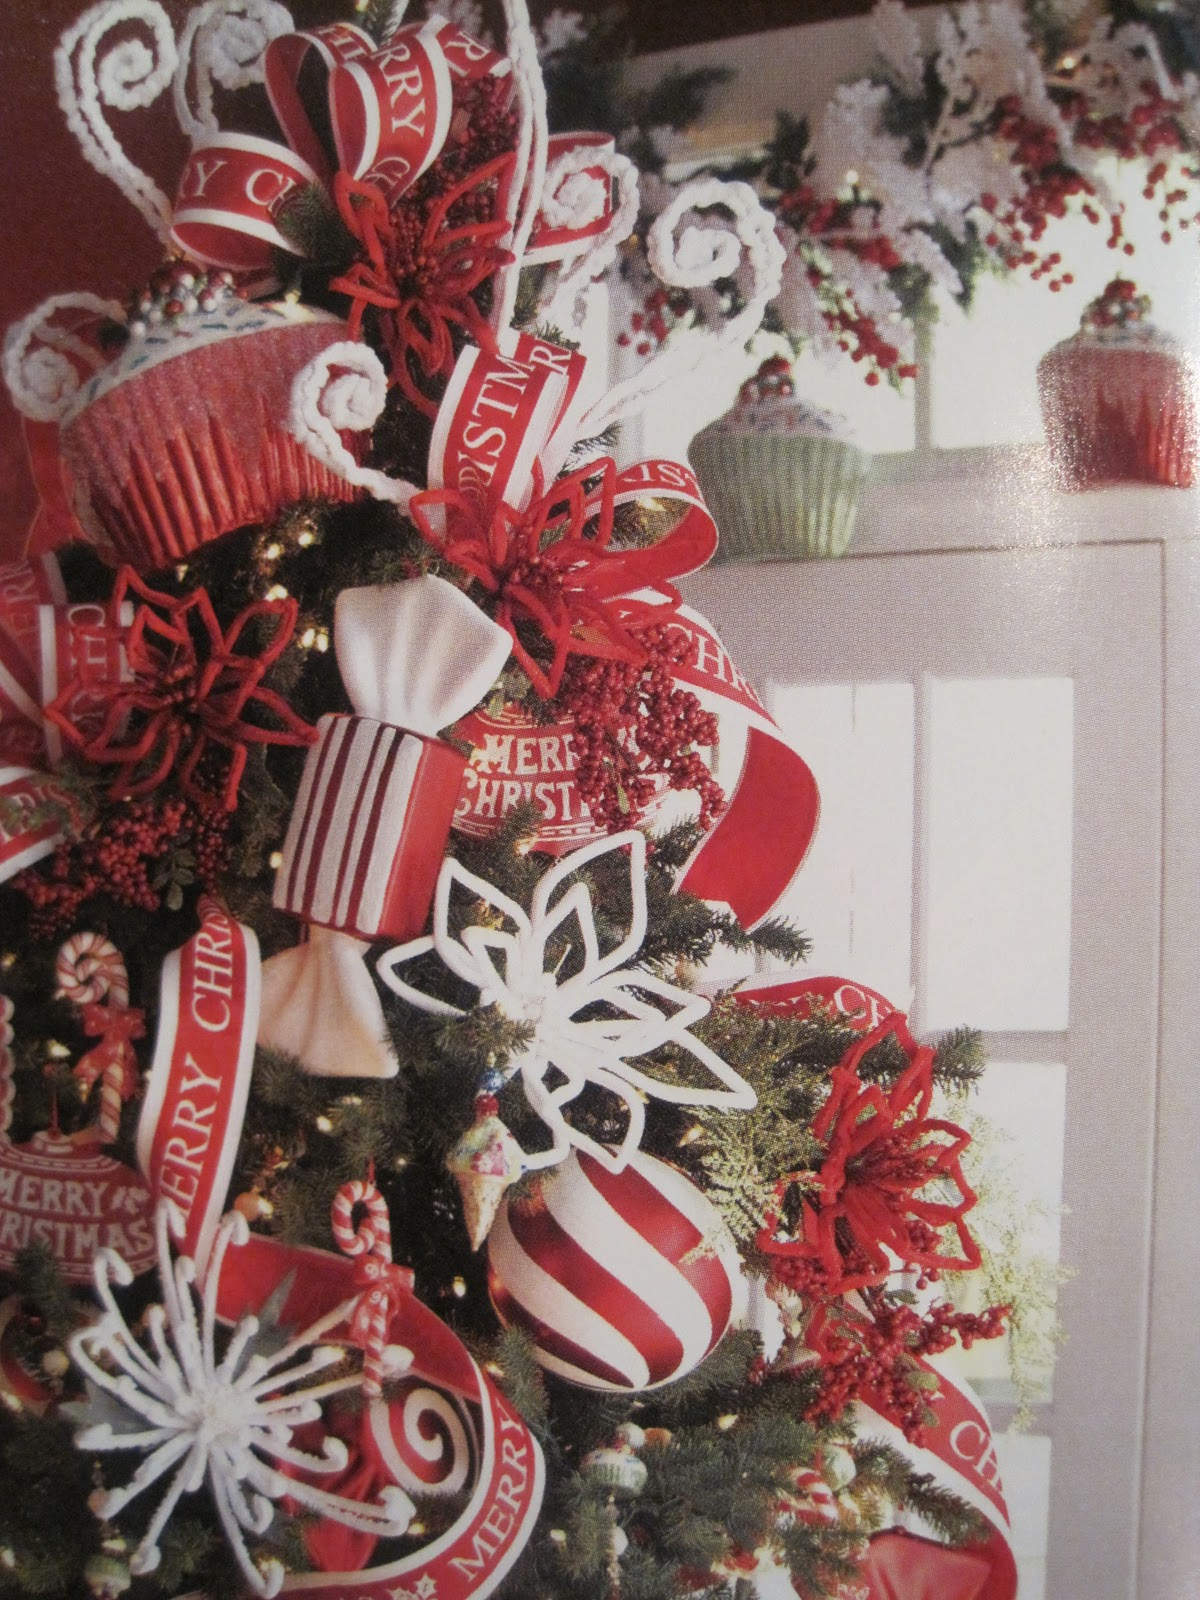 The tree topper which is not a topper at all its layers of ornaments and picks large ornaments add double the wow